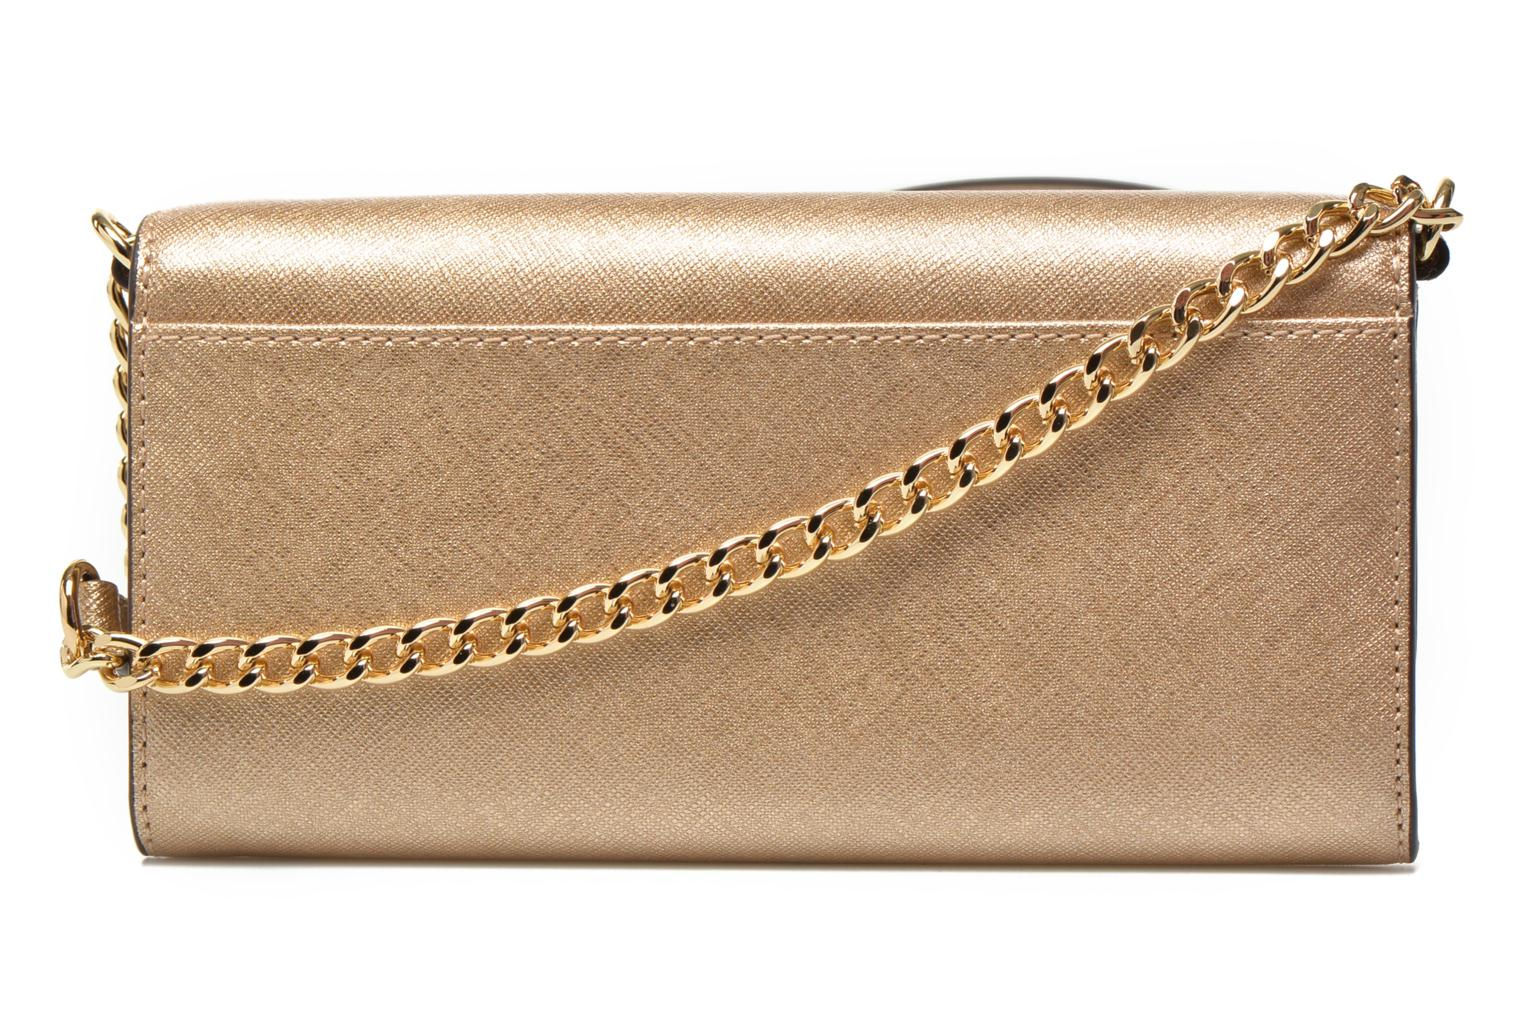 Petite Maroquinerie Michael Michael Kors JET SET Travel Wallet on a chain Or et bronze vue face